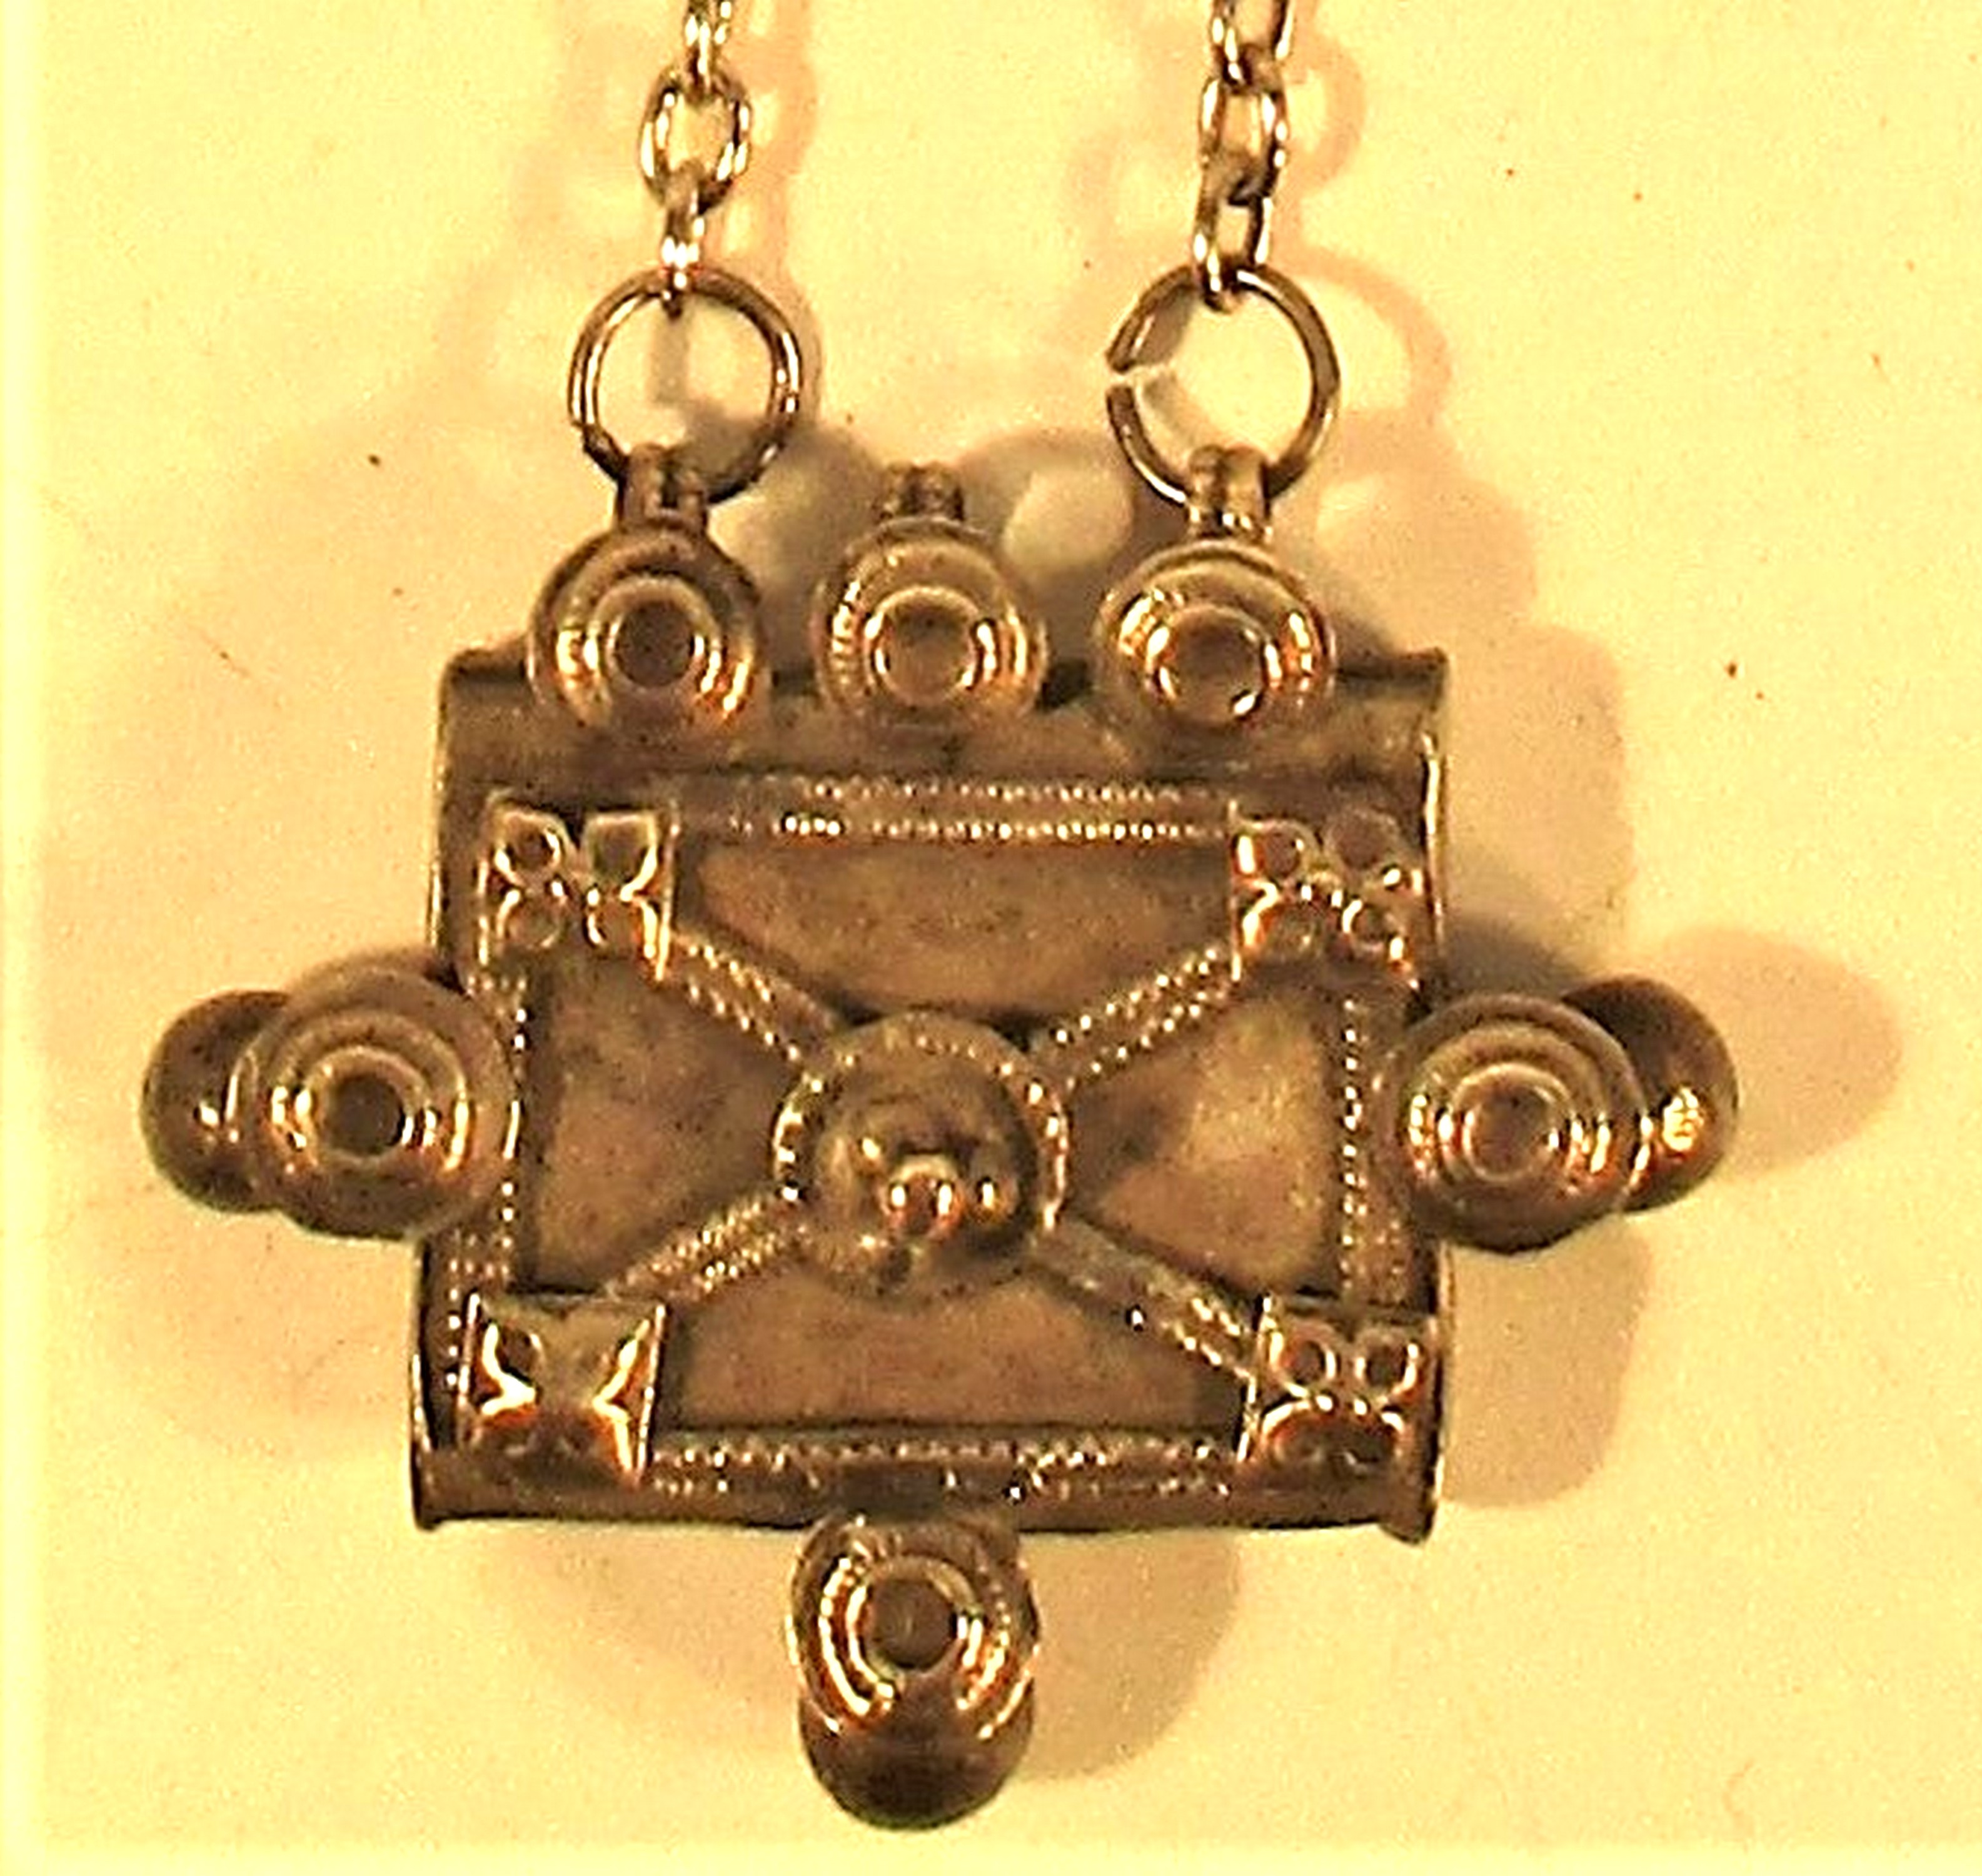 A pendant of an antique white metal amulet from Afghanistan on a chain. 32cm. - Image 2 of 2